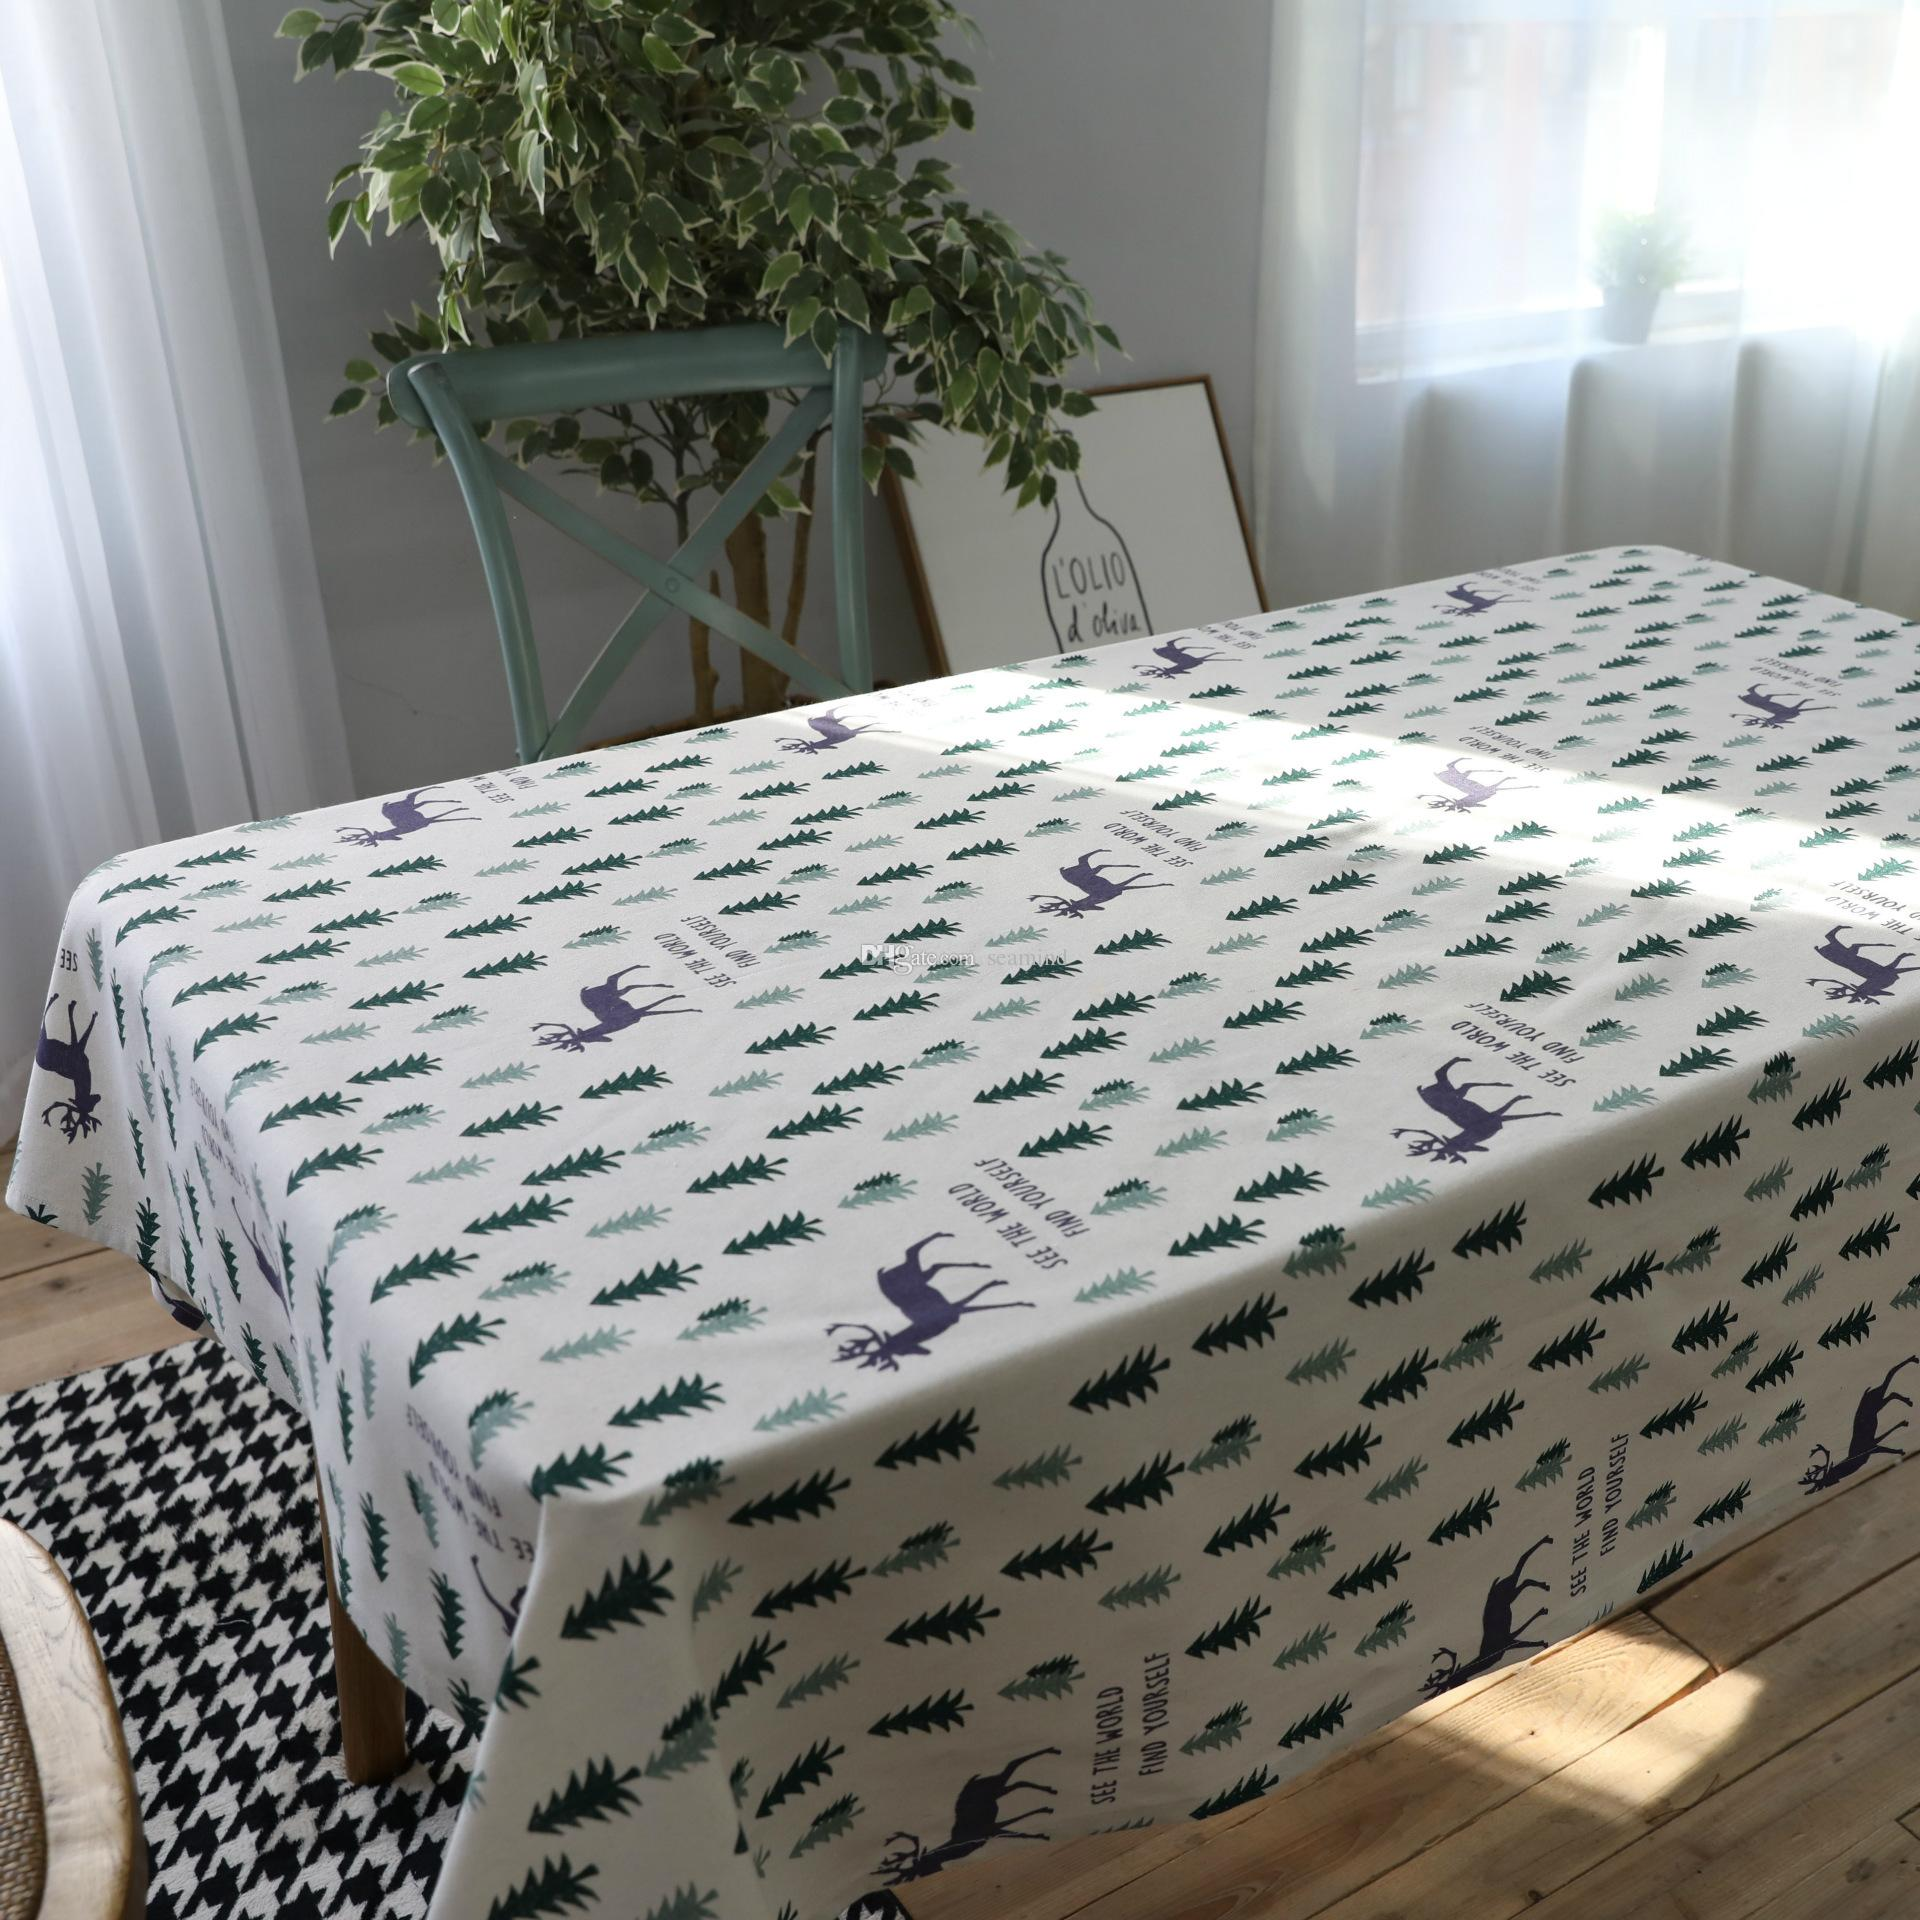 Simple Fresh Linen Cotton Table Cloth Country Style Christmas Tree Solid  Multifunctional Rectangle Table Cover Tablecloth Picnic Blanket Small  Tablecloths ...